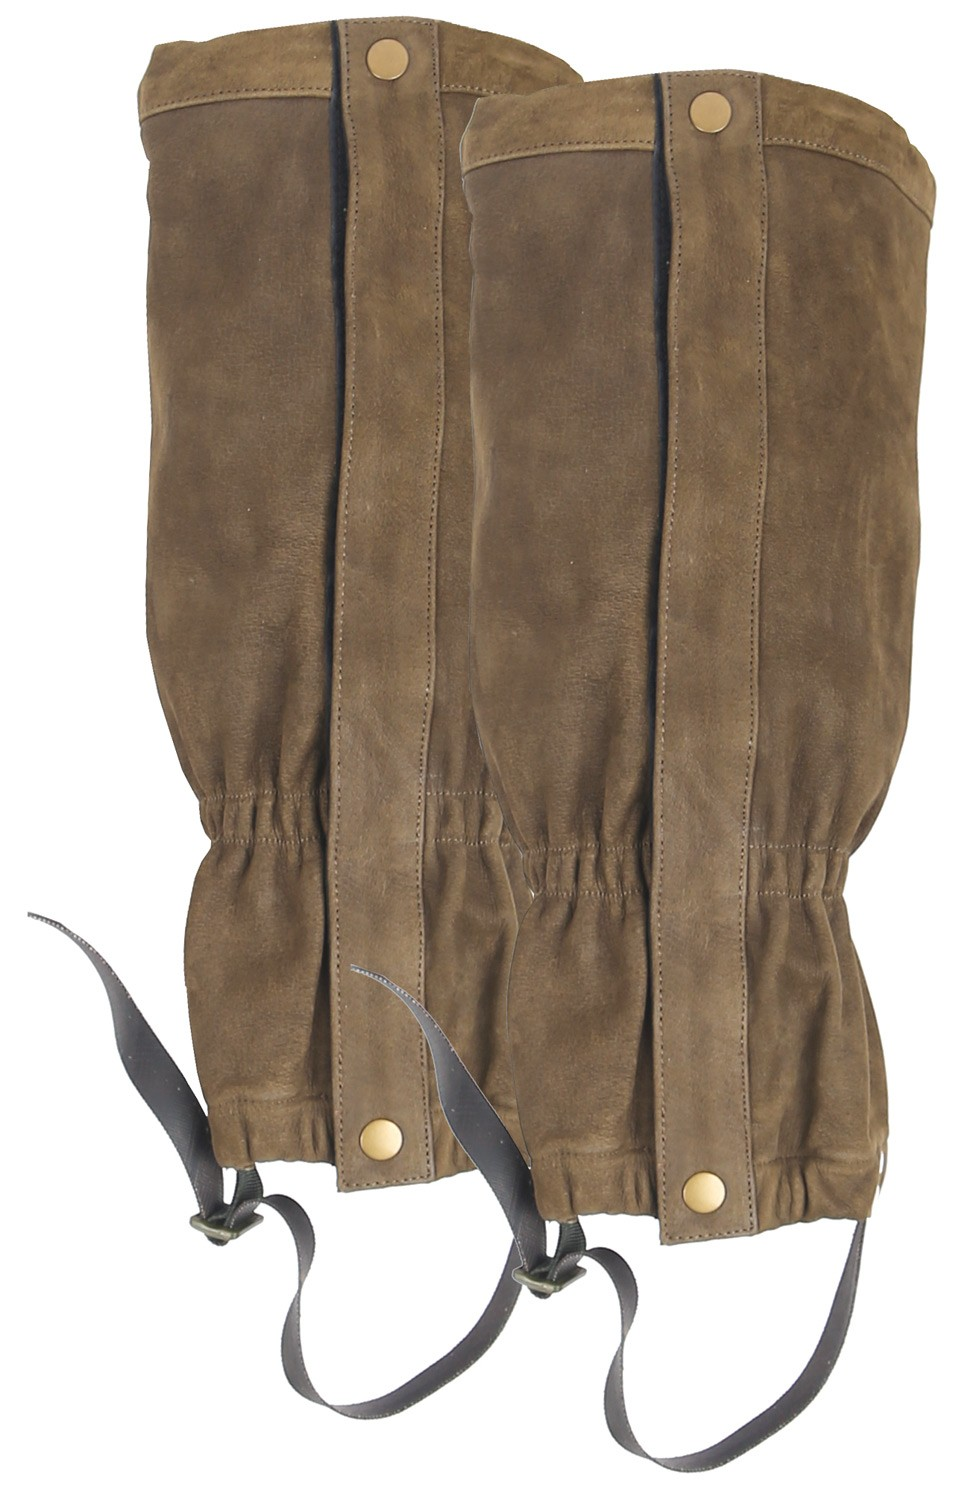 Guêtres cuir de buffle somlys 777, made in chasse - equip...